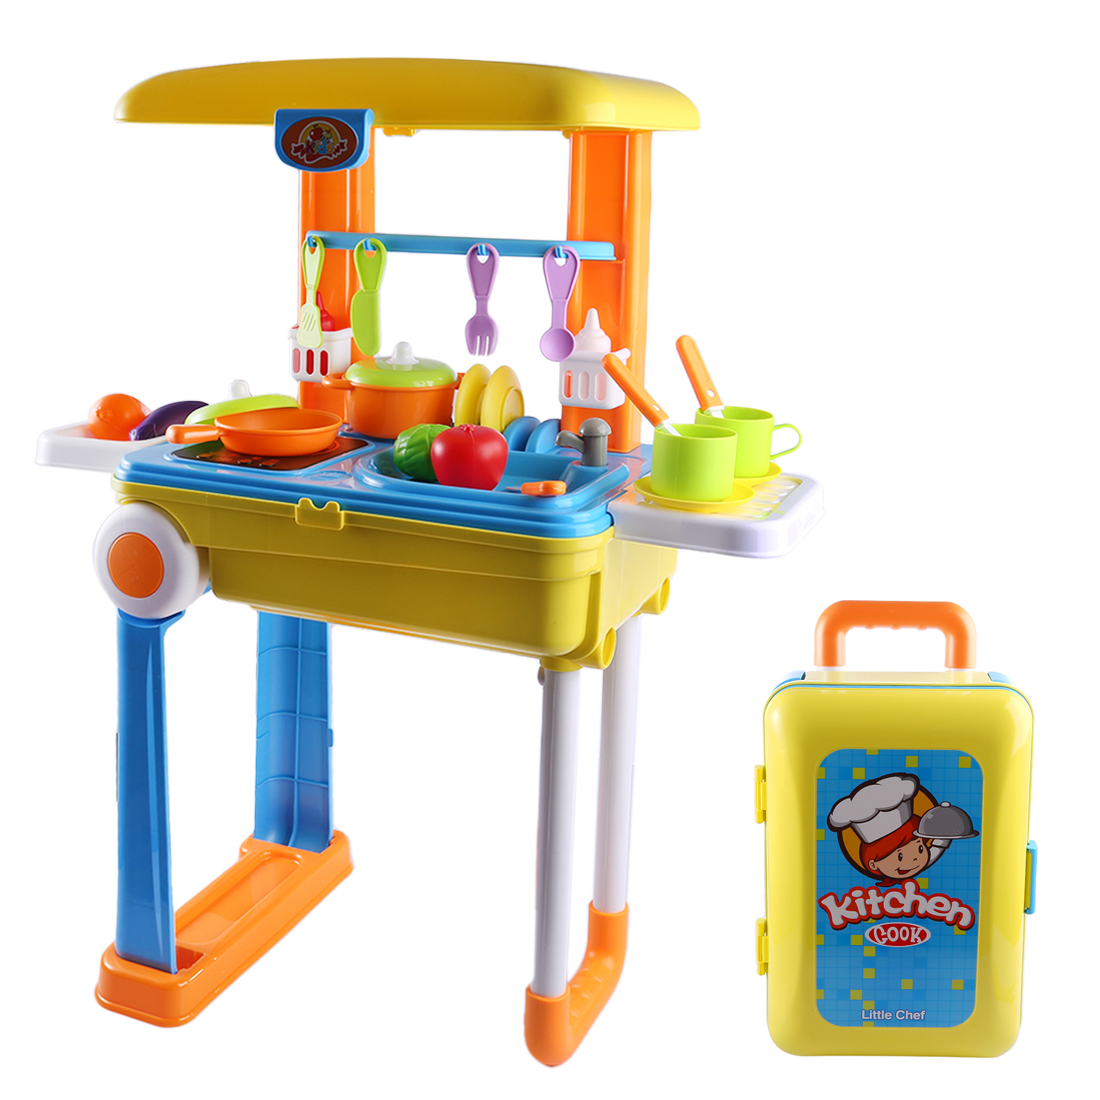 Kids Kitchen Set Children Kitchen Toys Large Kitchen